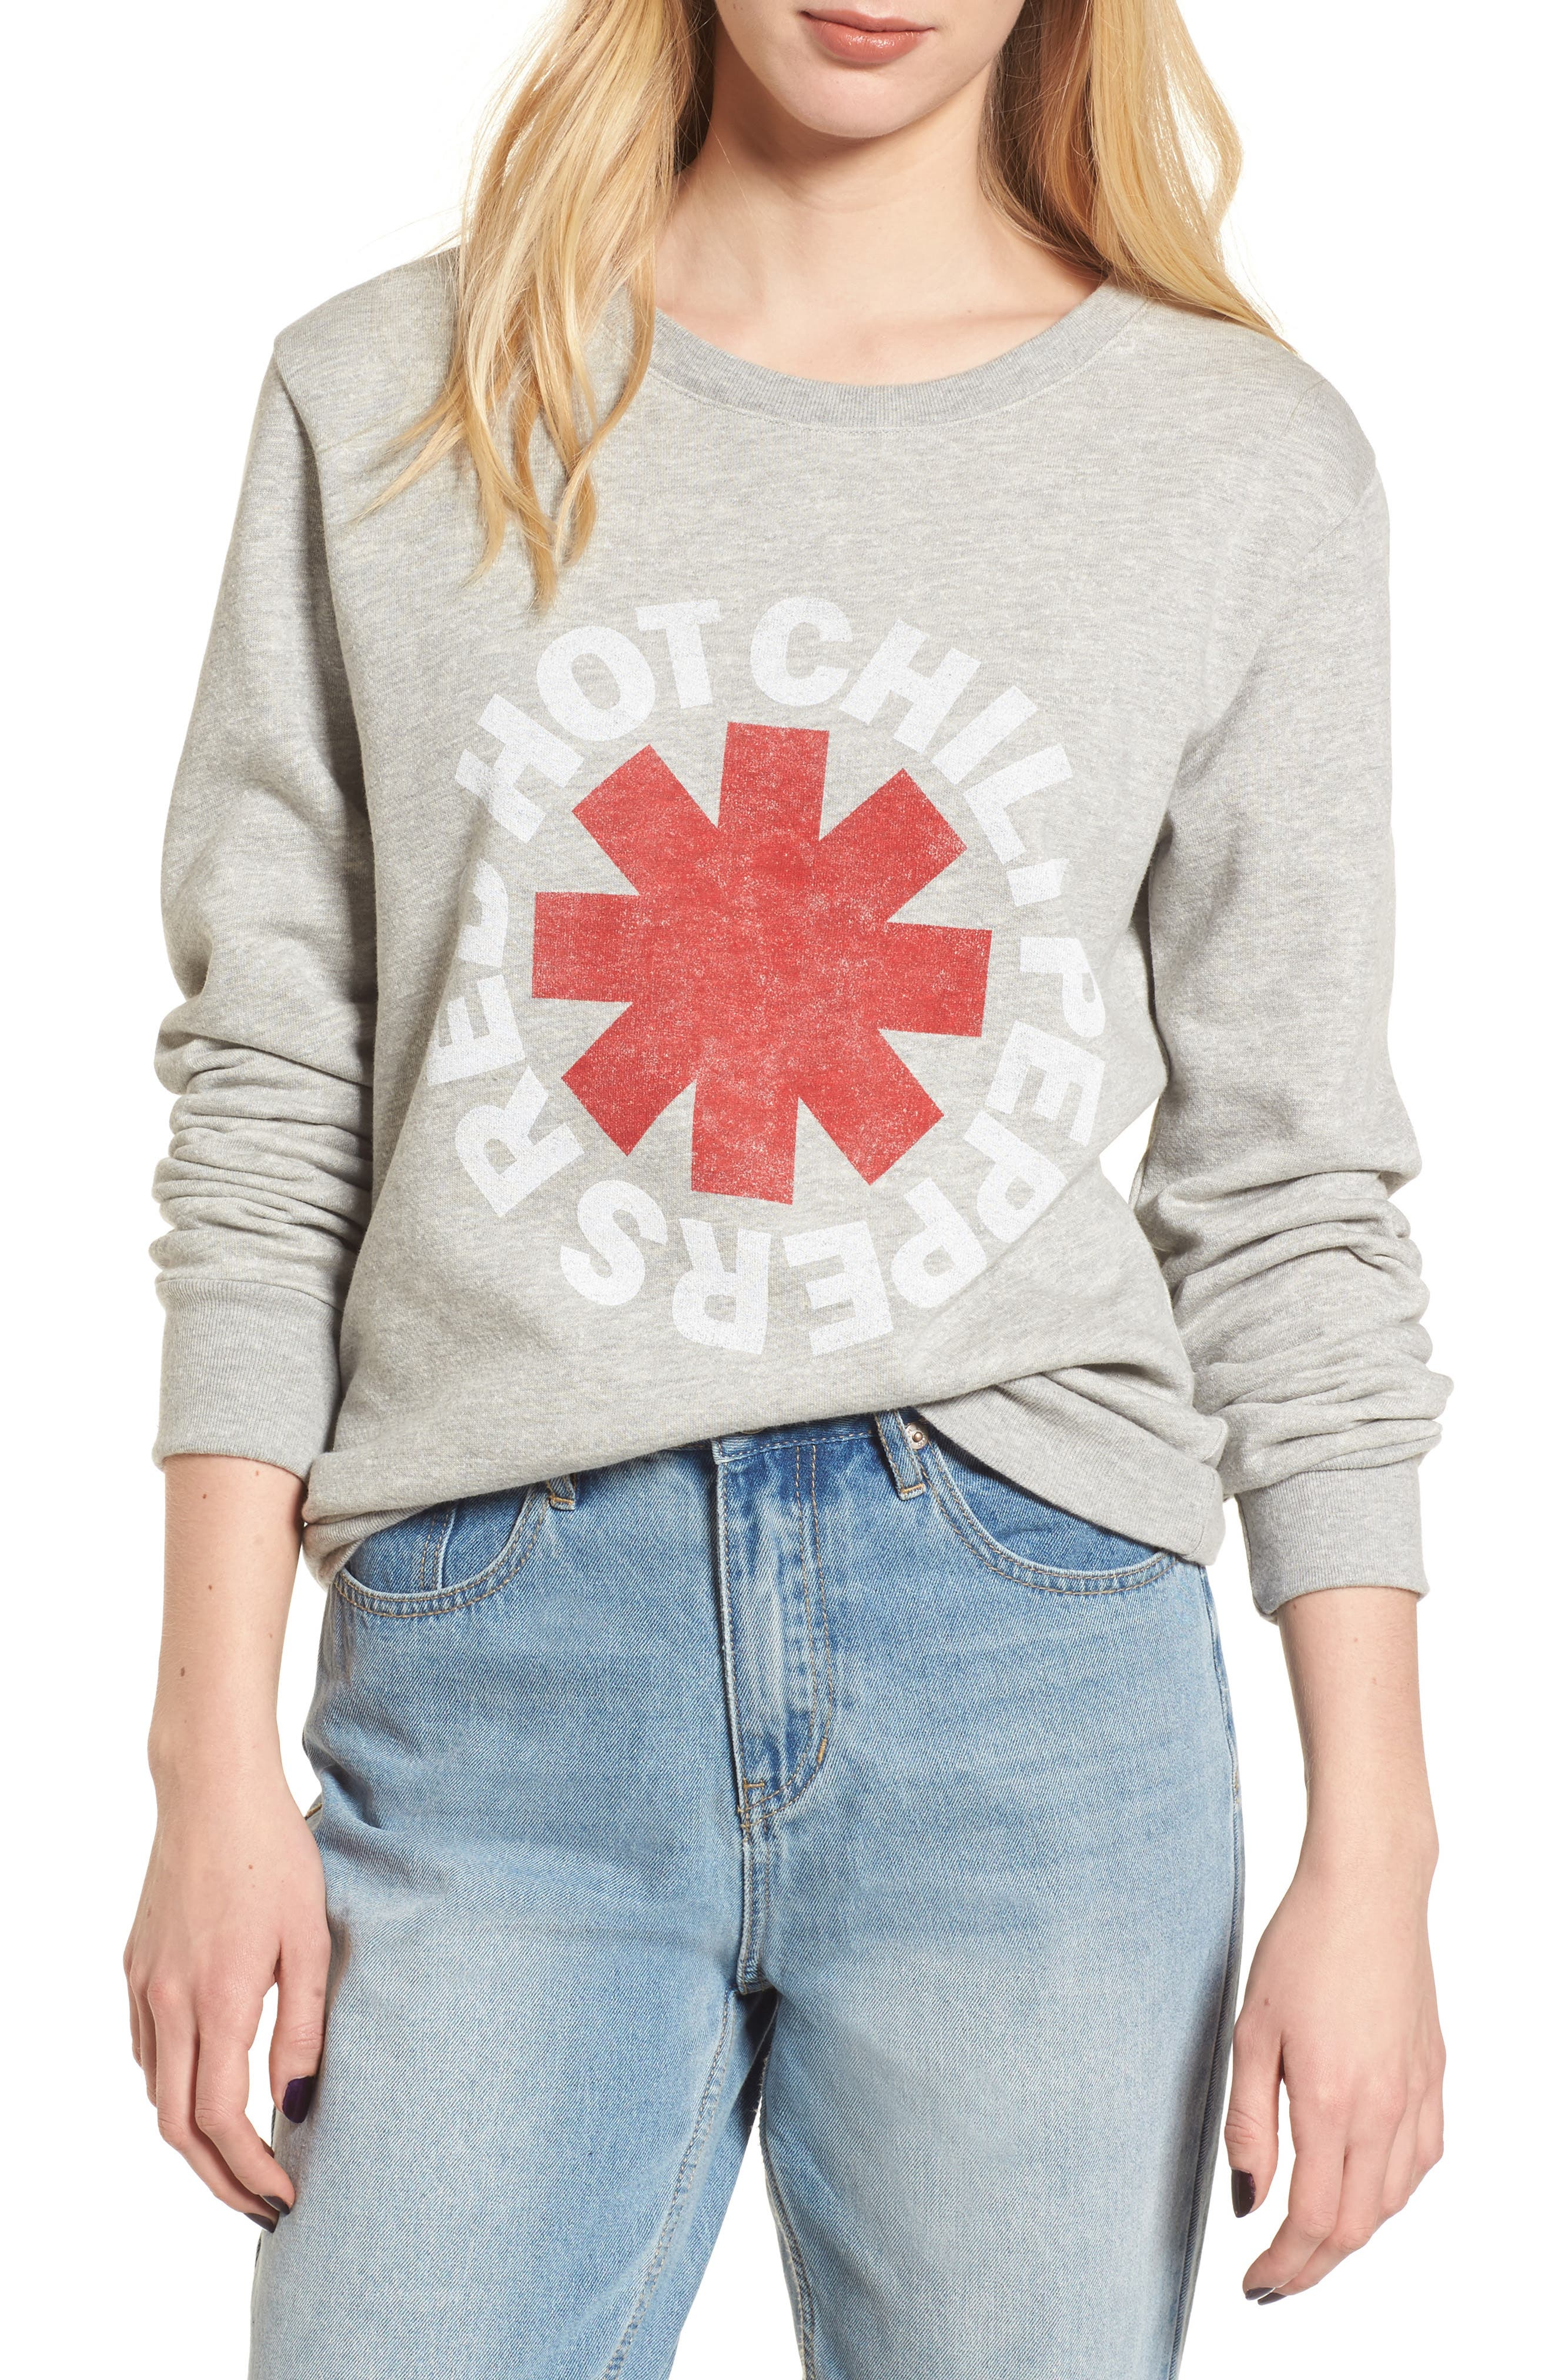 Red Hot Chili Peppers Sweatshirt,                             Main thumbnail 1, color,